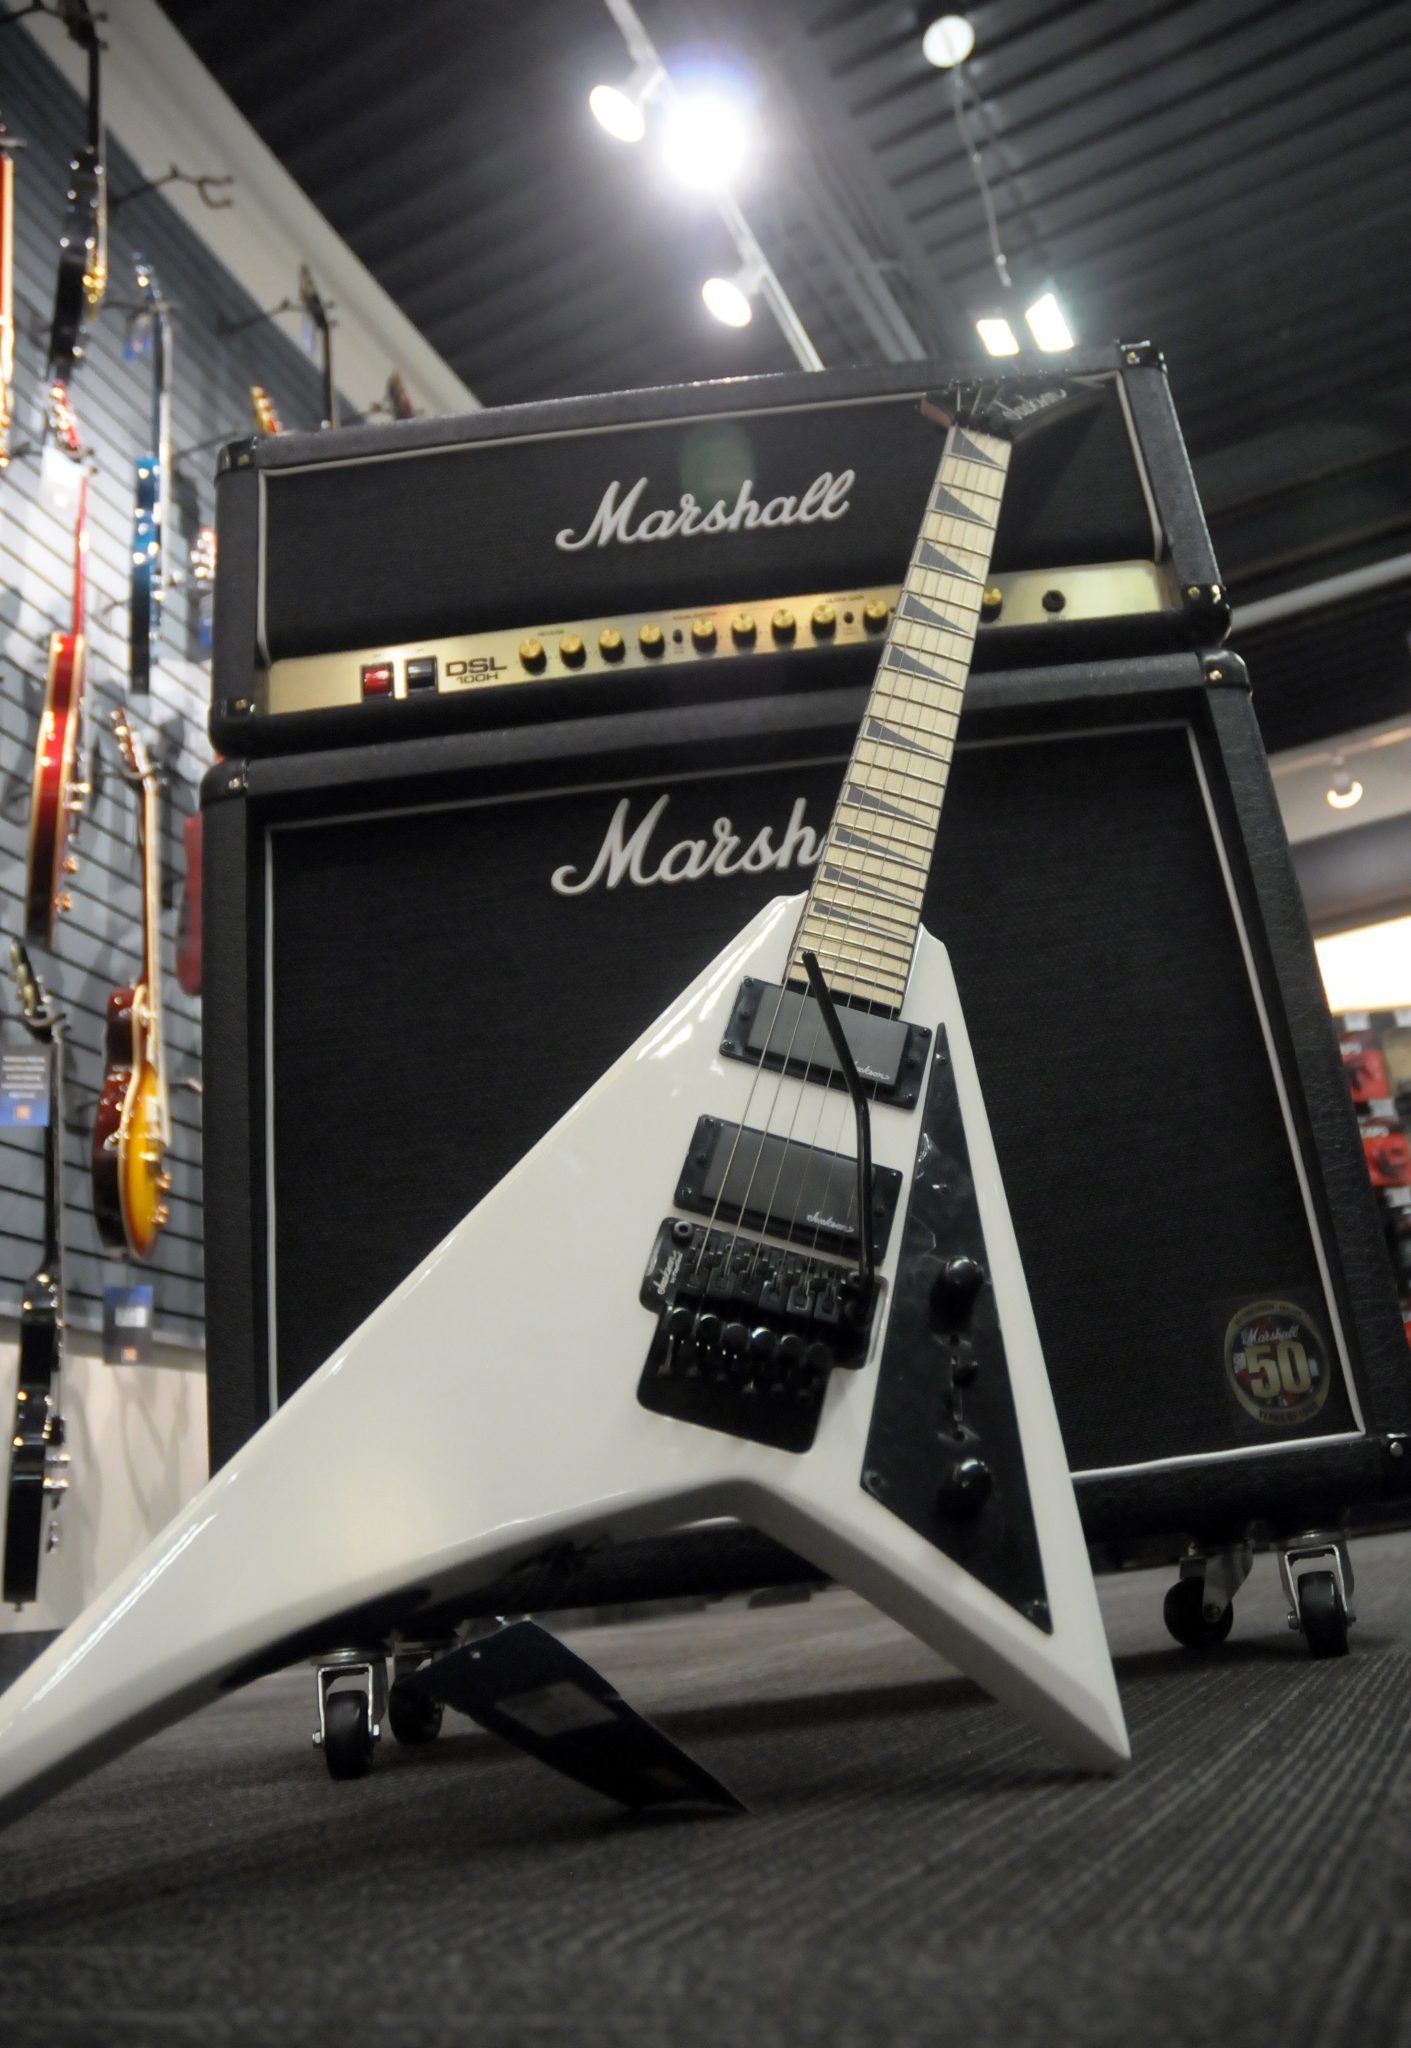 Jackson V and Marshall smp